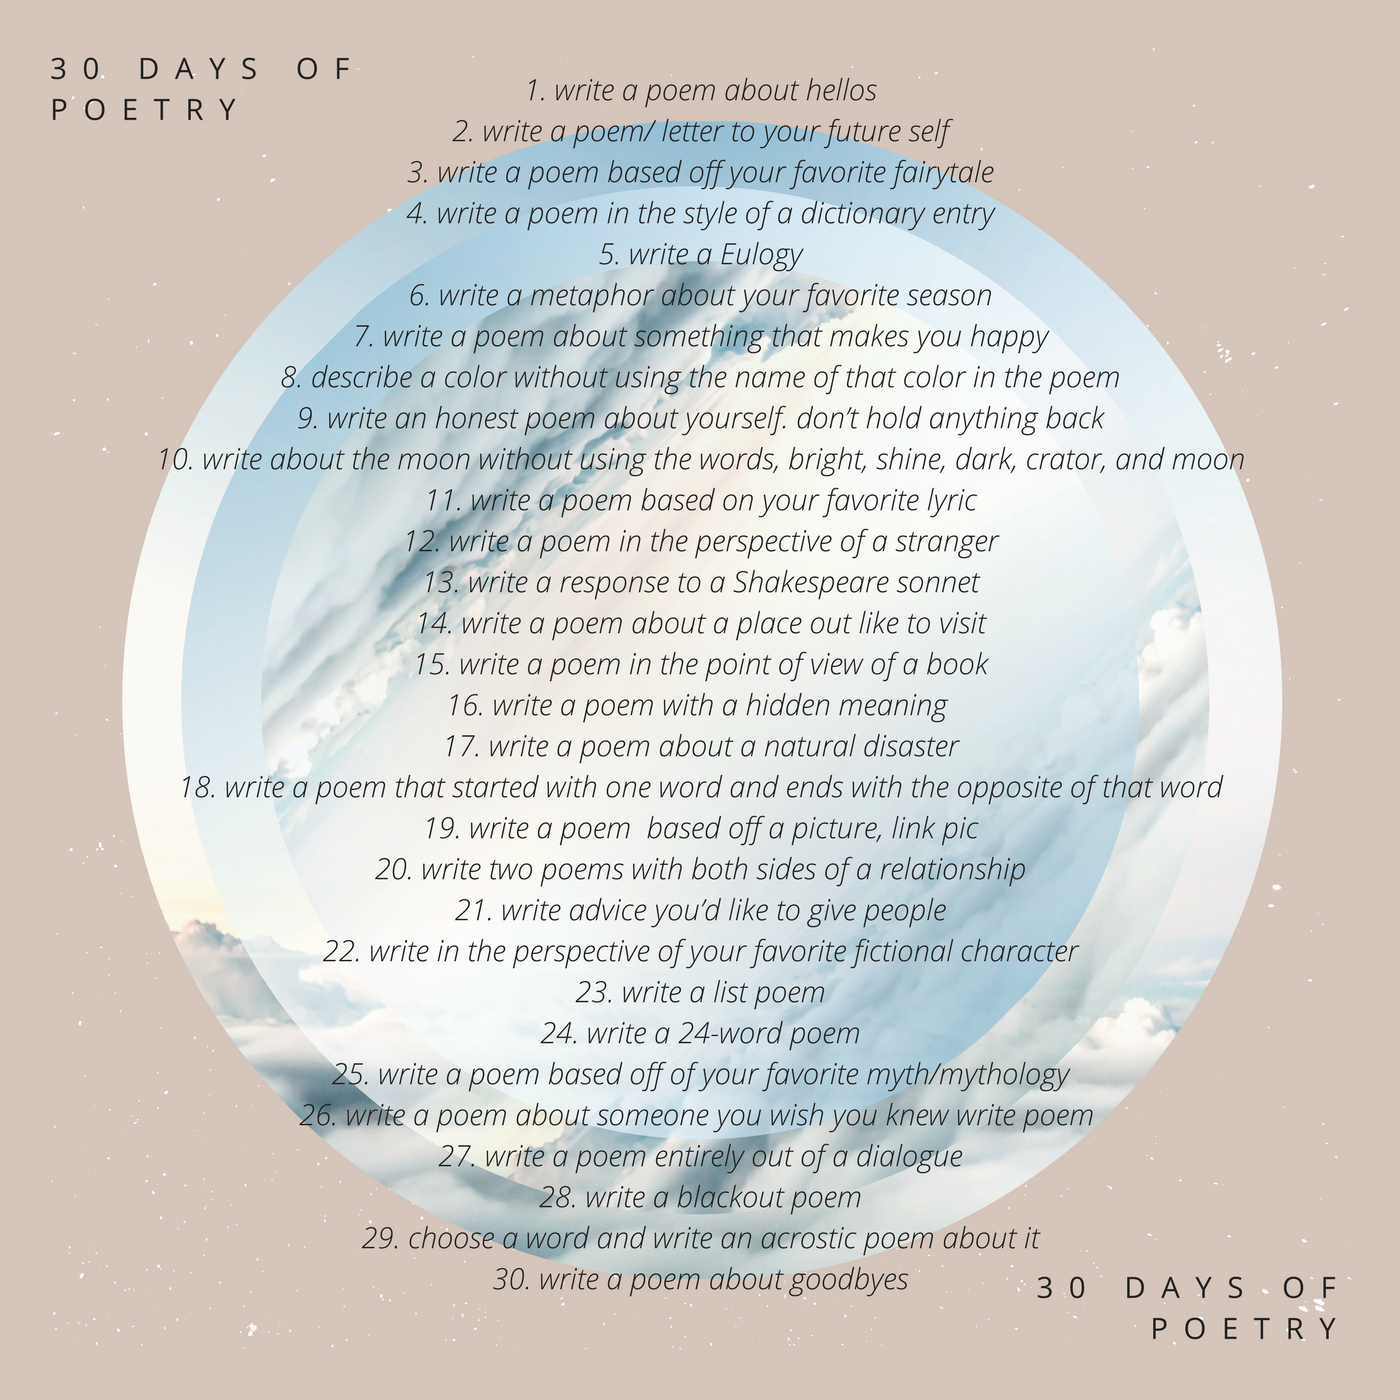 30days_of_poetry